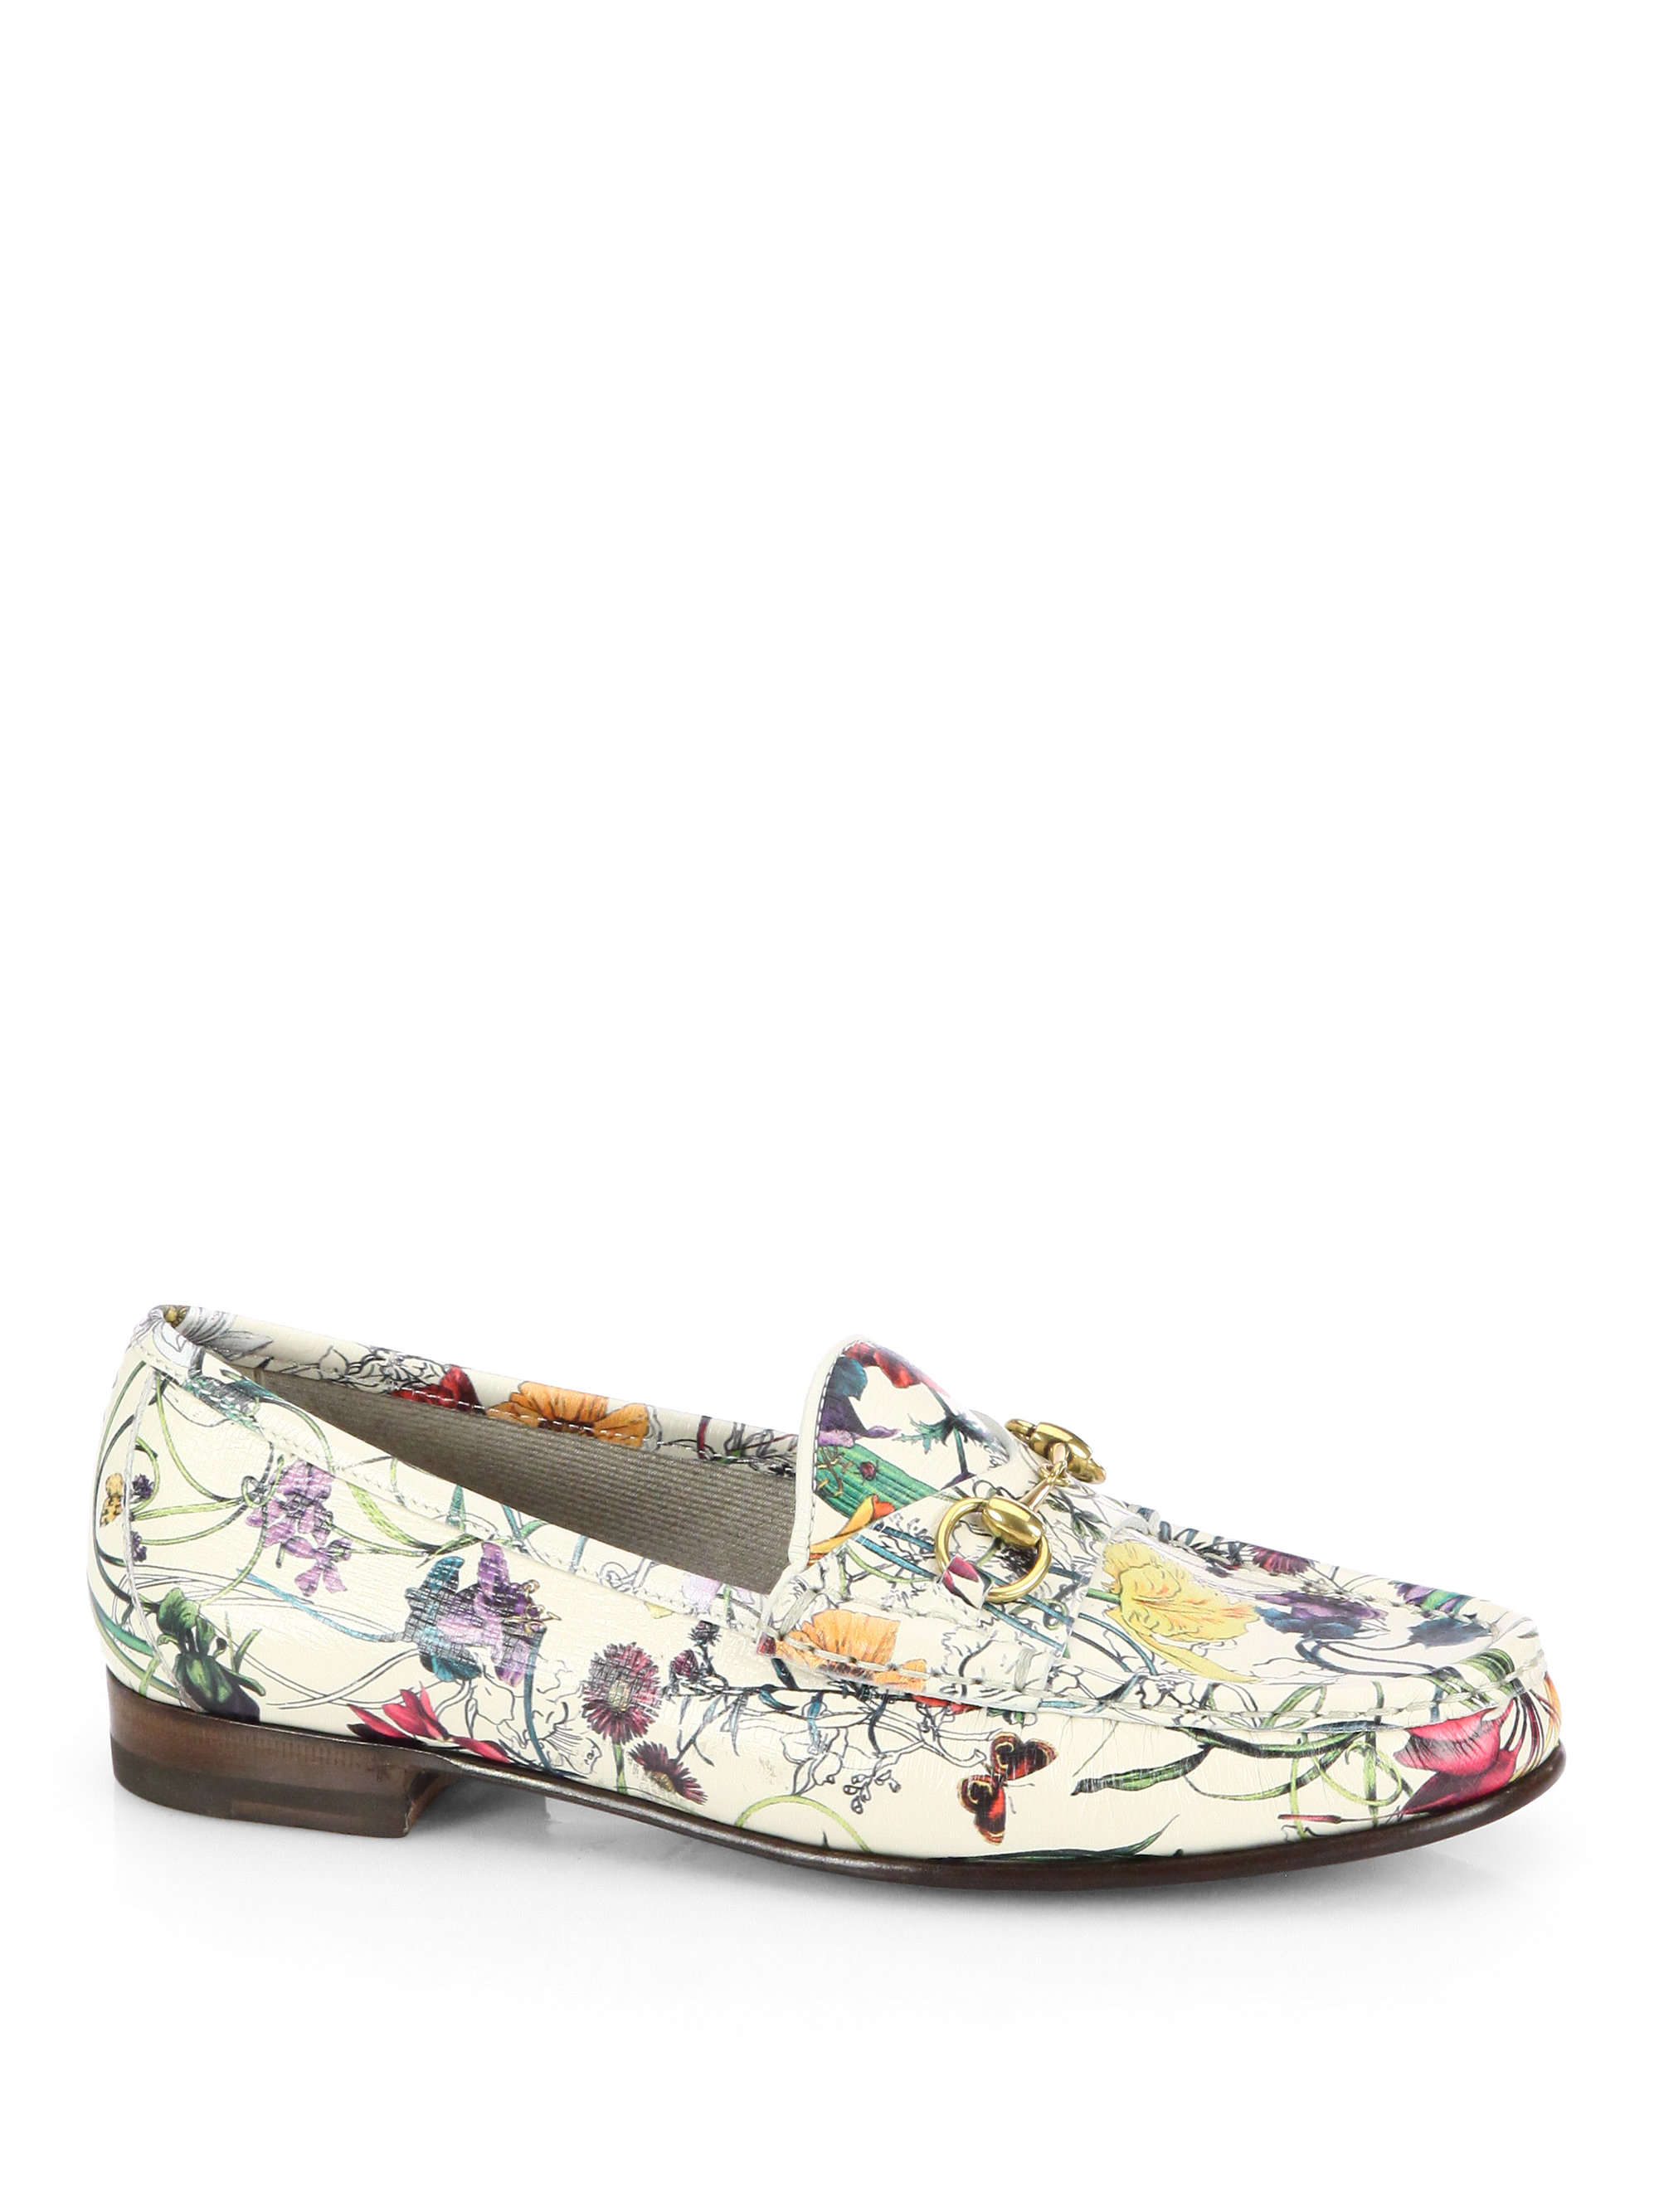 Lyst Gucci Floral Print Leather Moccasin Loafers